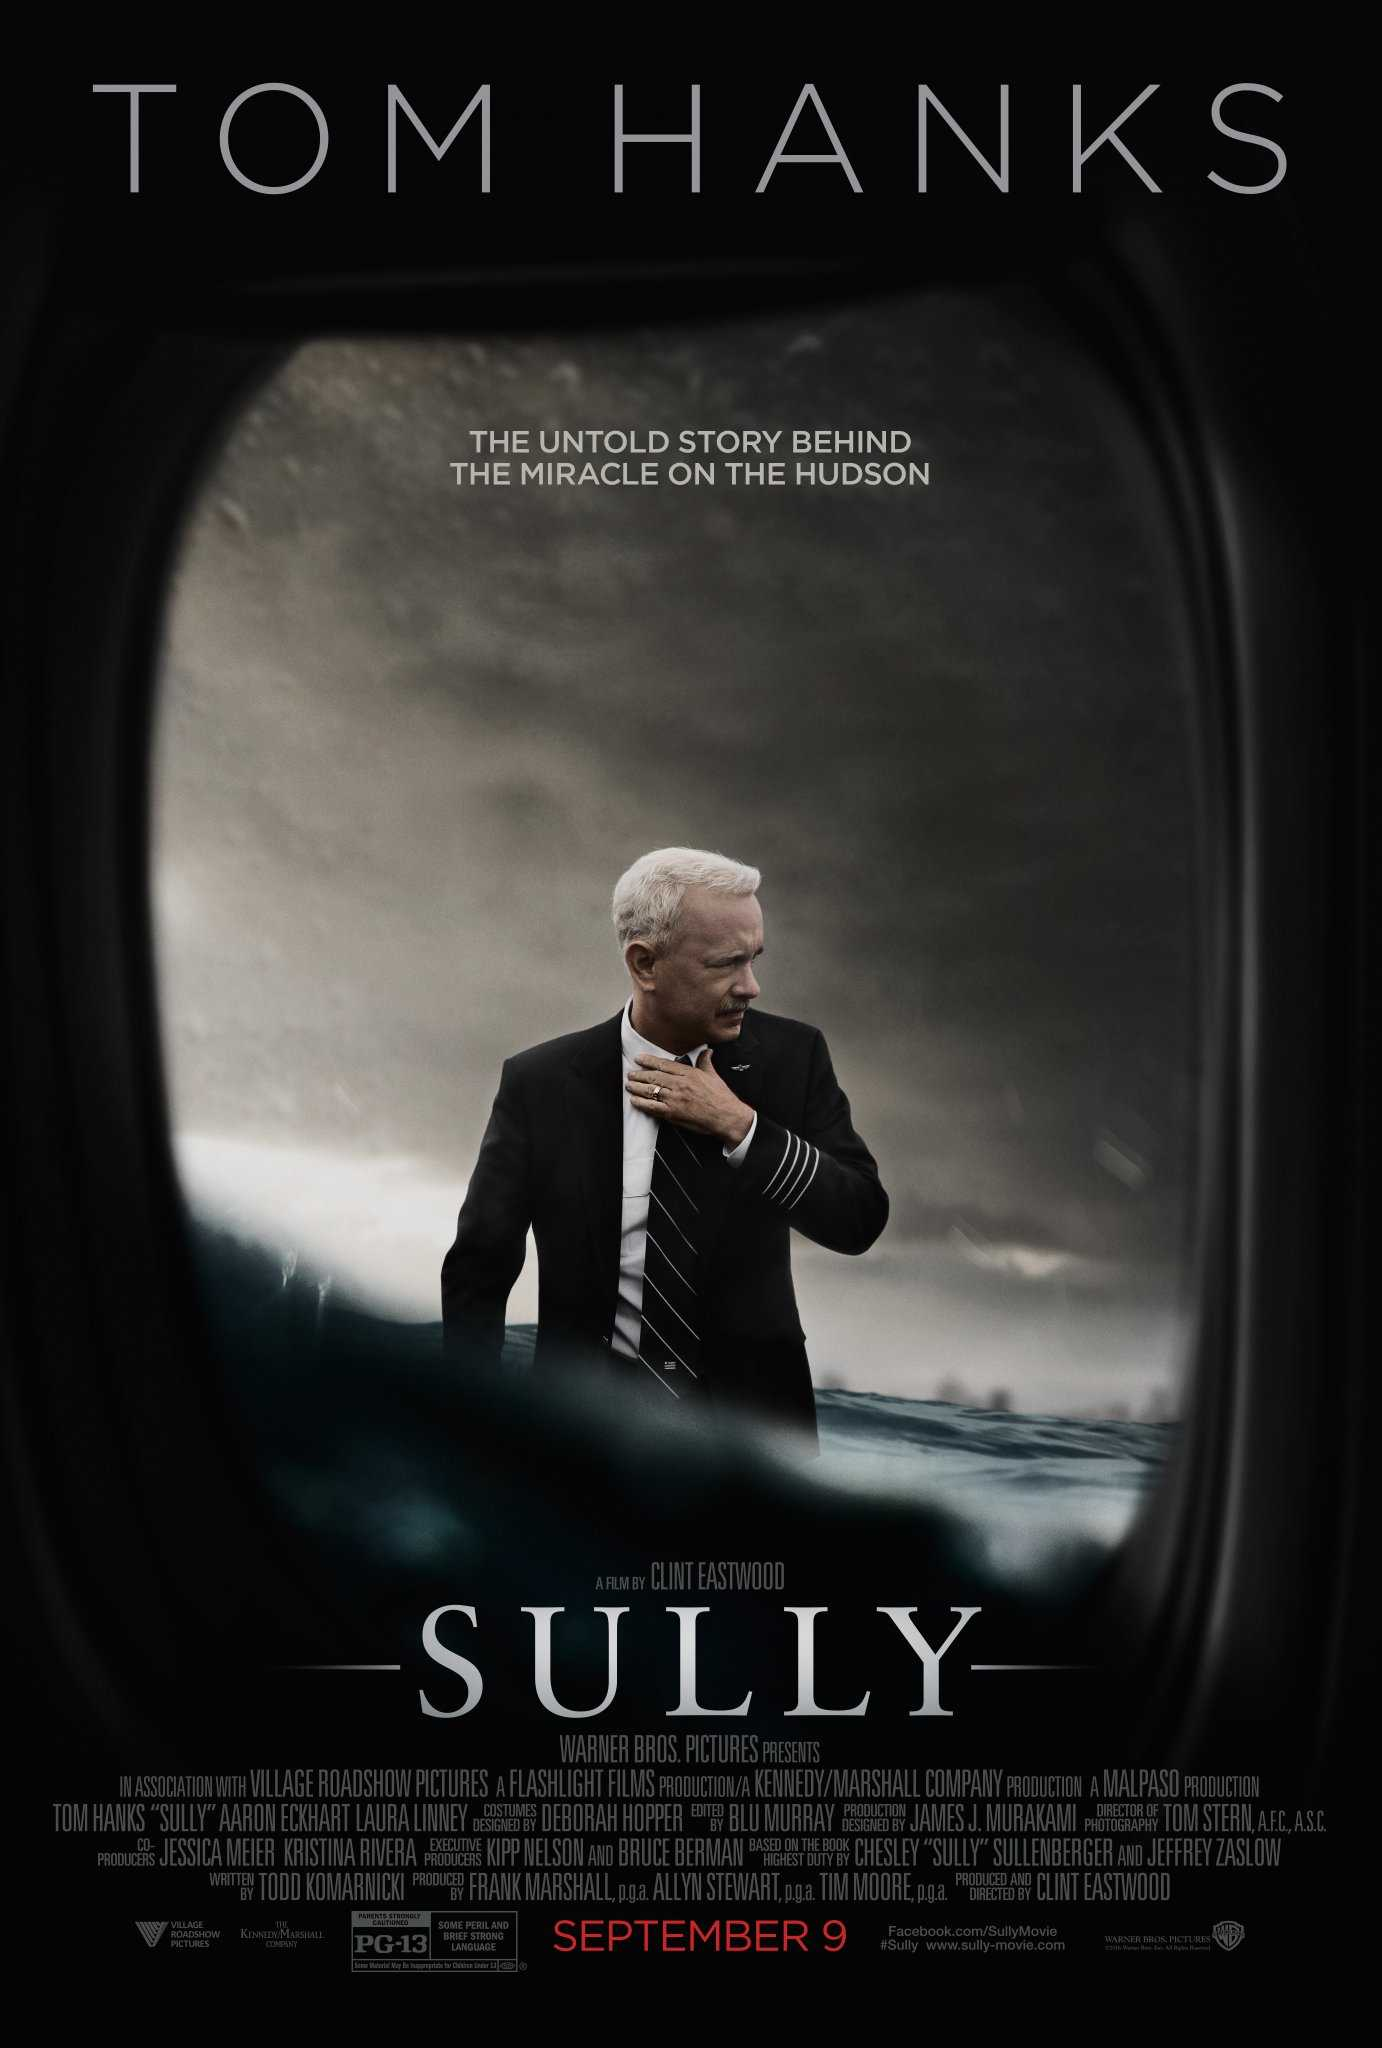 Tom Hanks Scores Another Hit With 'Sully' Debuting At $35.5 Million | Sully